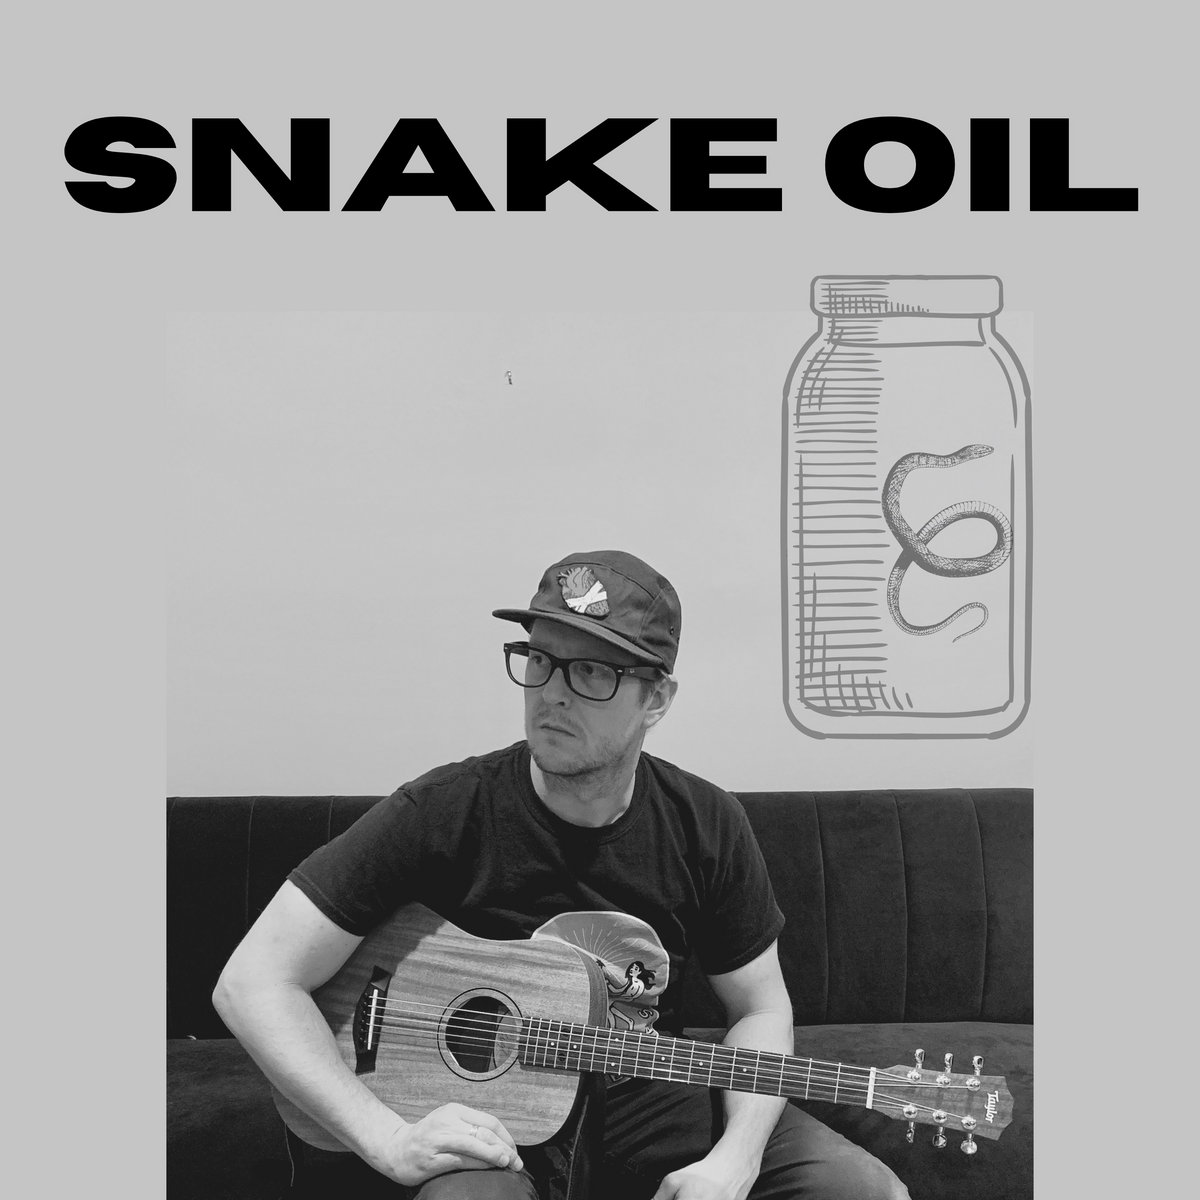 Snake Oil by The Mike Jones Band